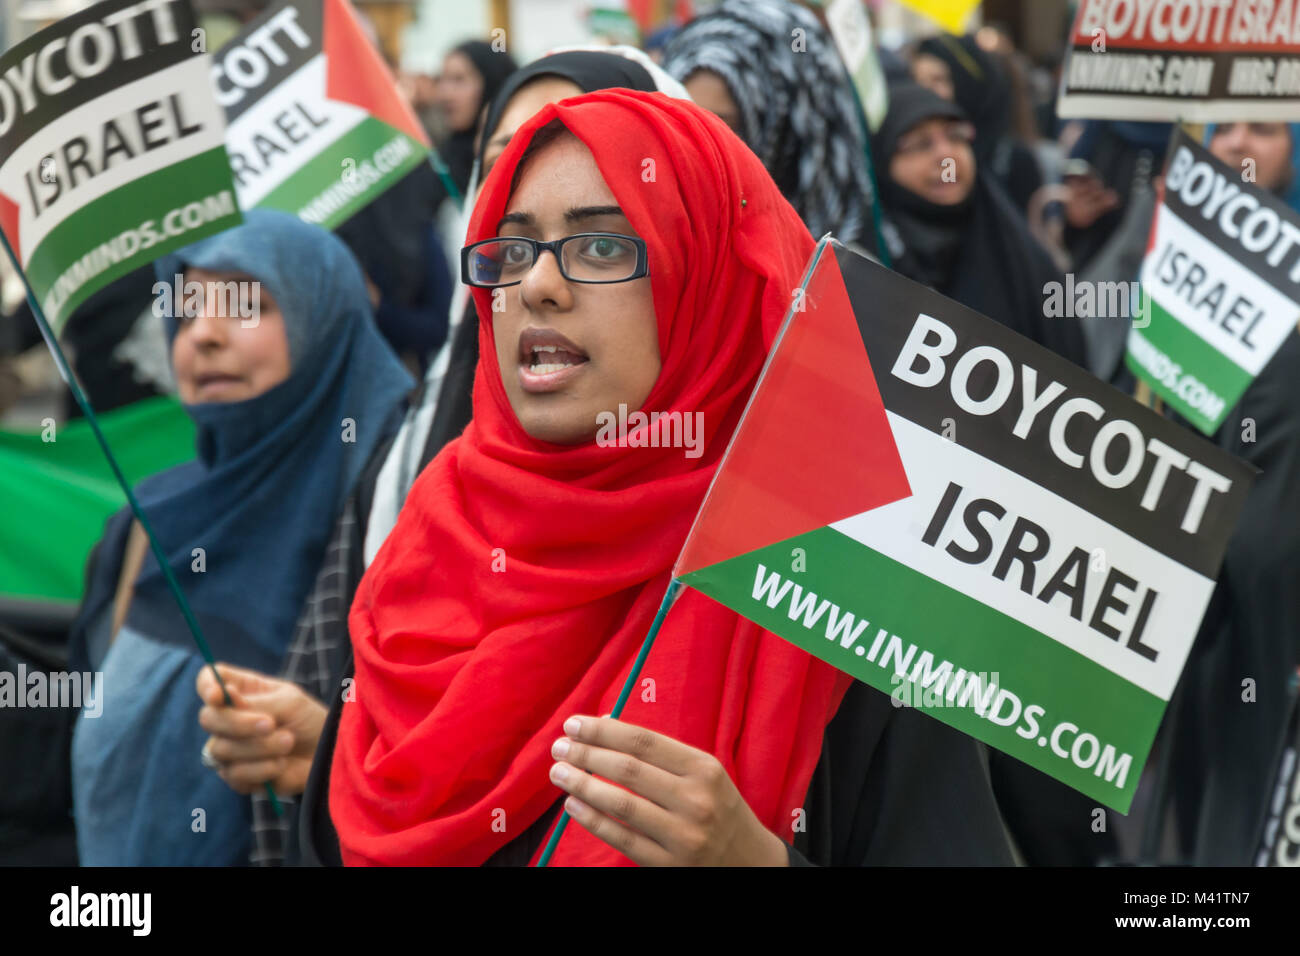 A woman in a red headscarf carries a 'Boycott Israel' Palestinian flag on the Al Quds Day march in London. - Stock Image